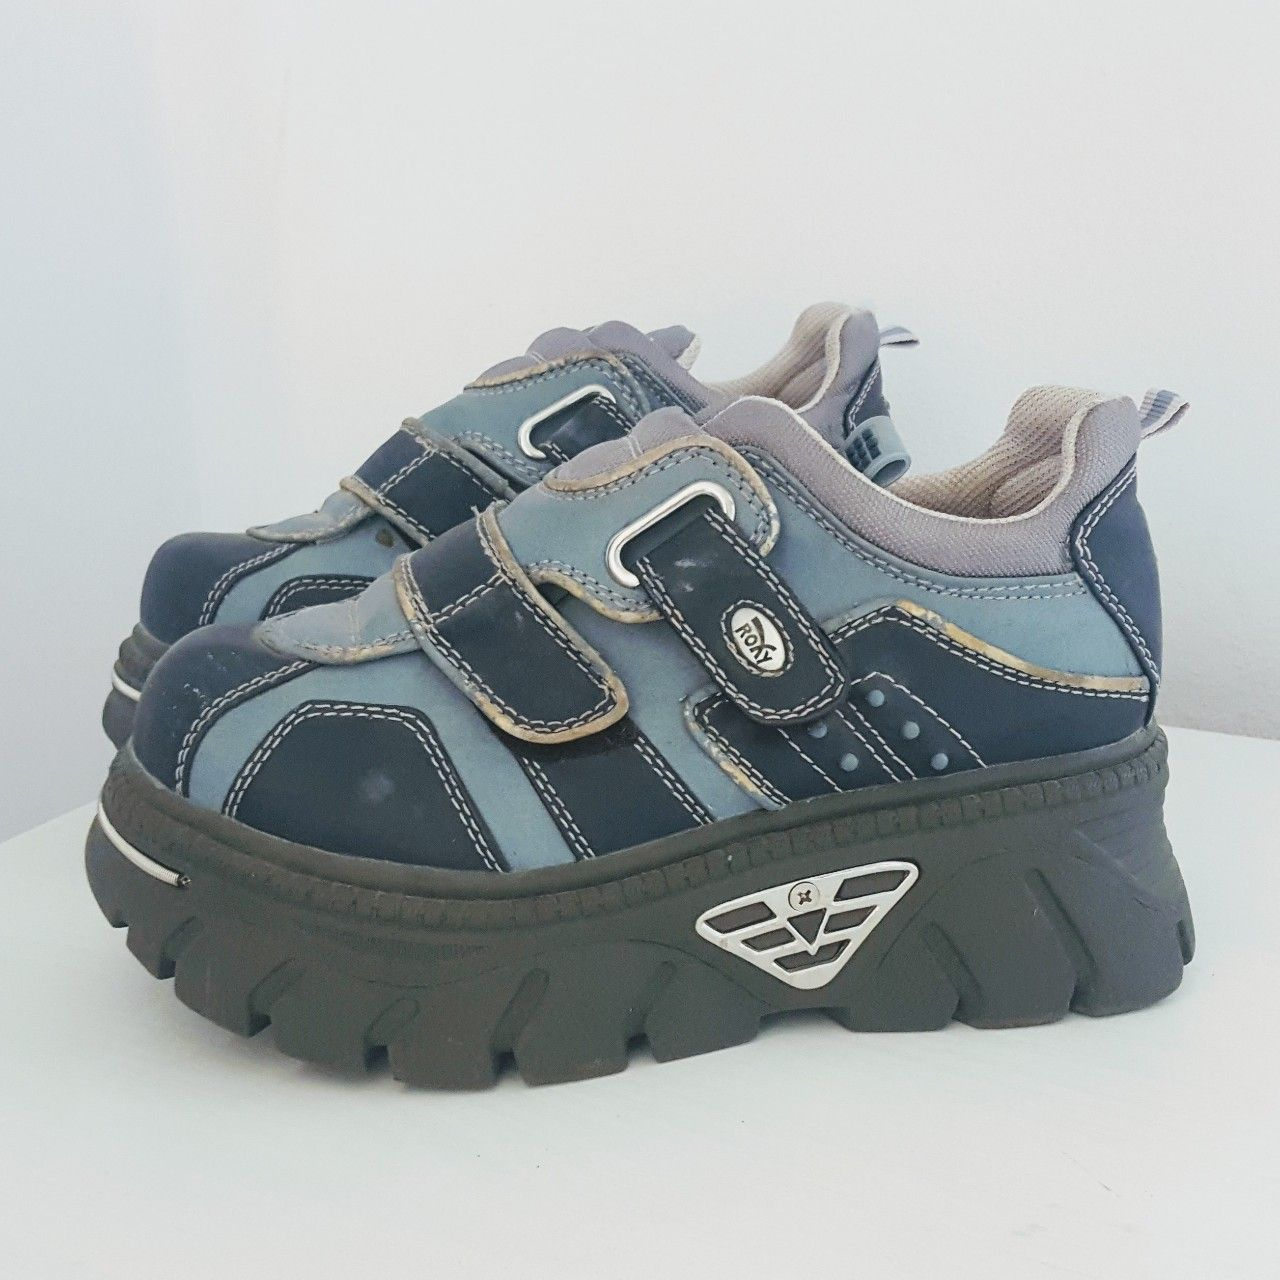 Reduced Grey And Blue Vintage Chunky Roxy Depop Aesthetic Shoes Cute Shoes Fashion Shoes